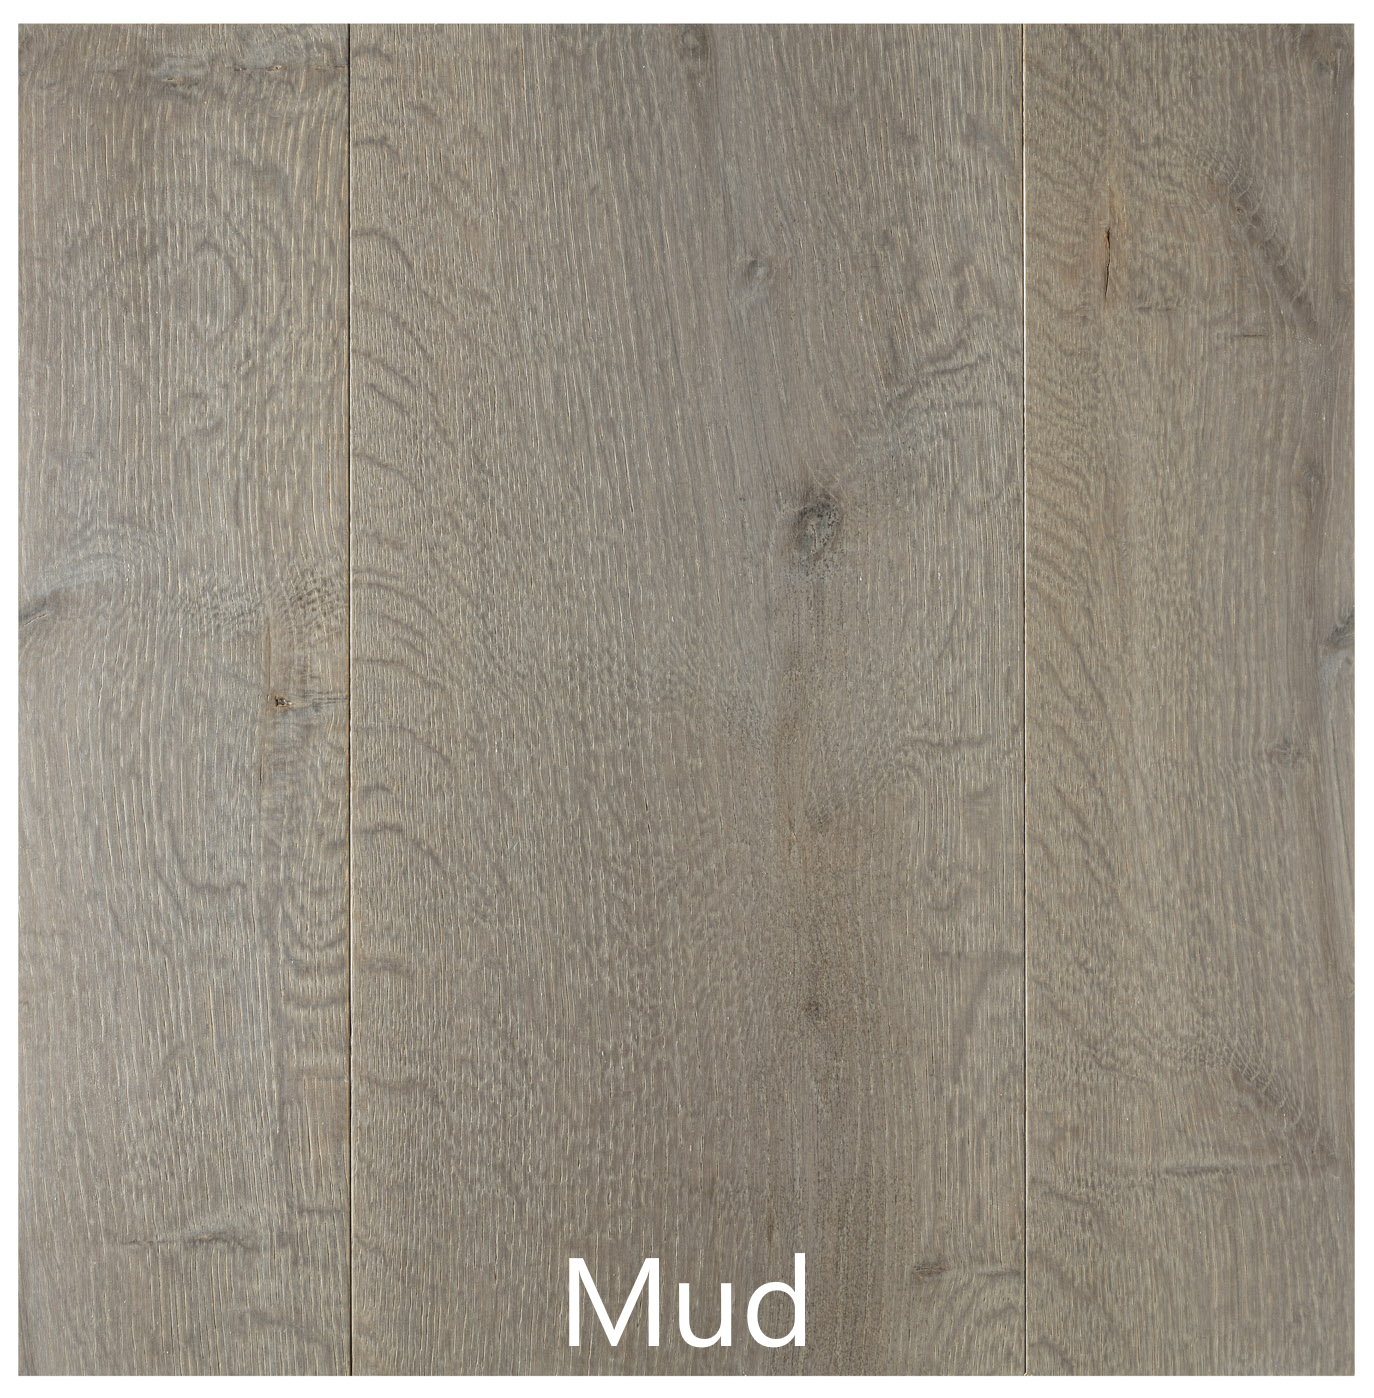 Reactive Stain NT Mud